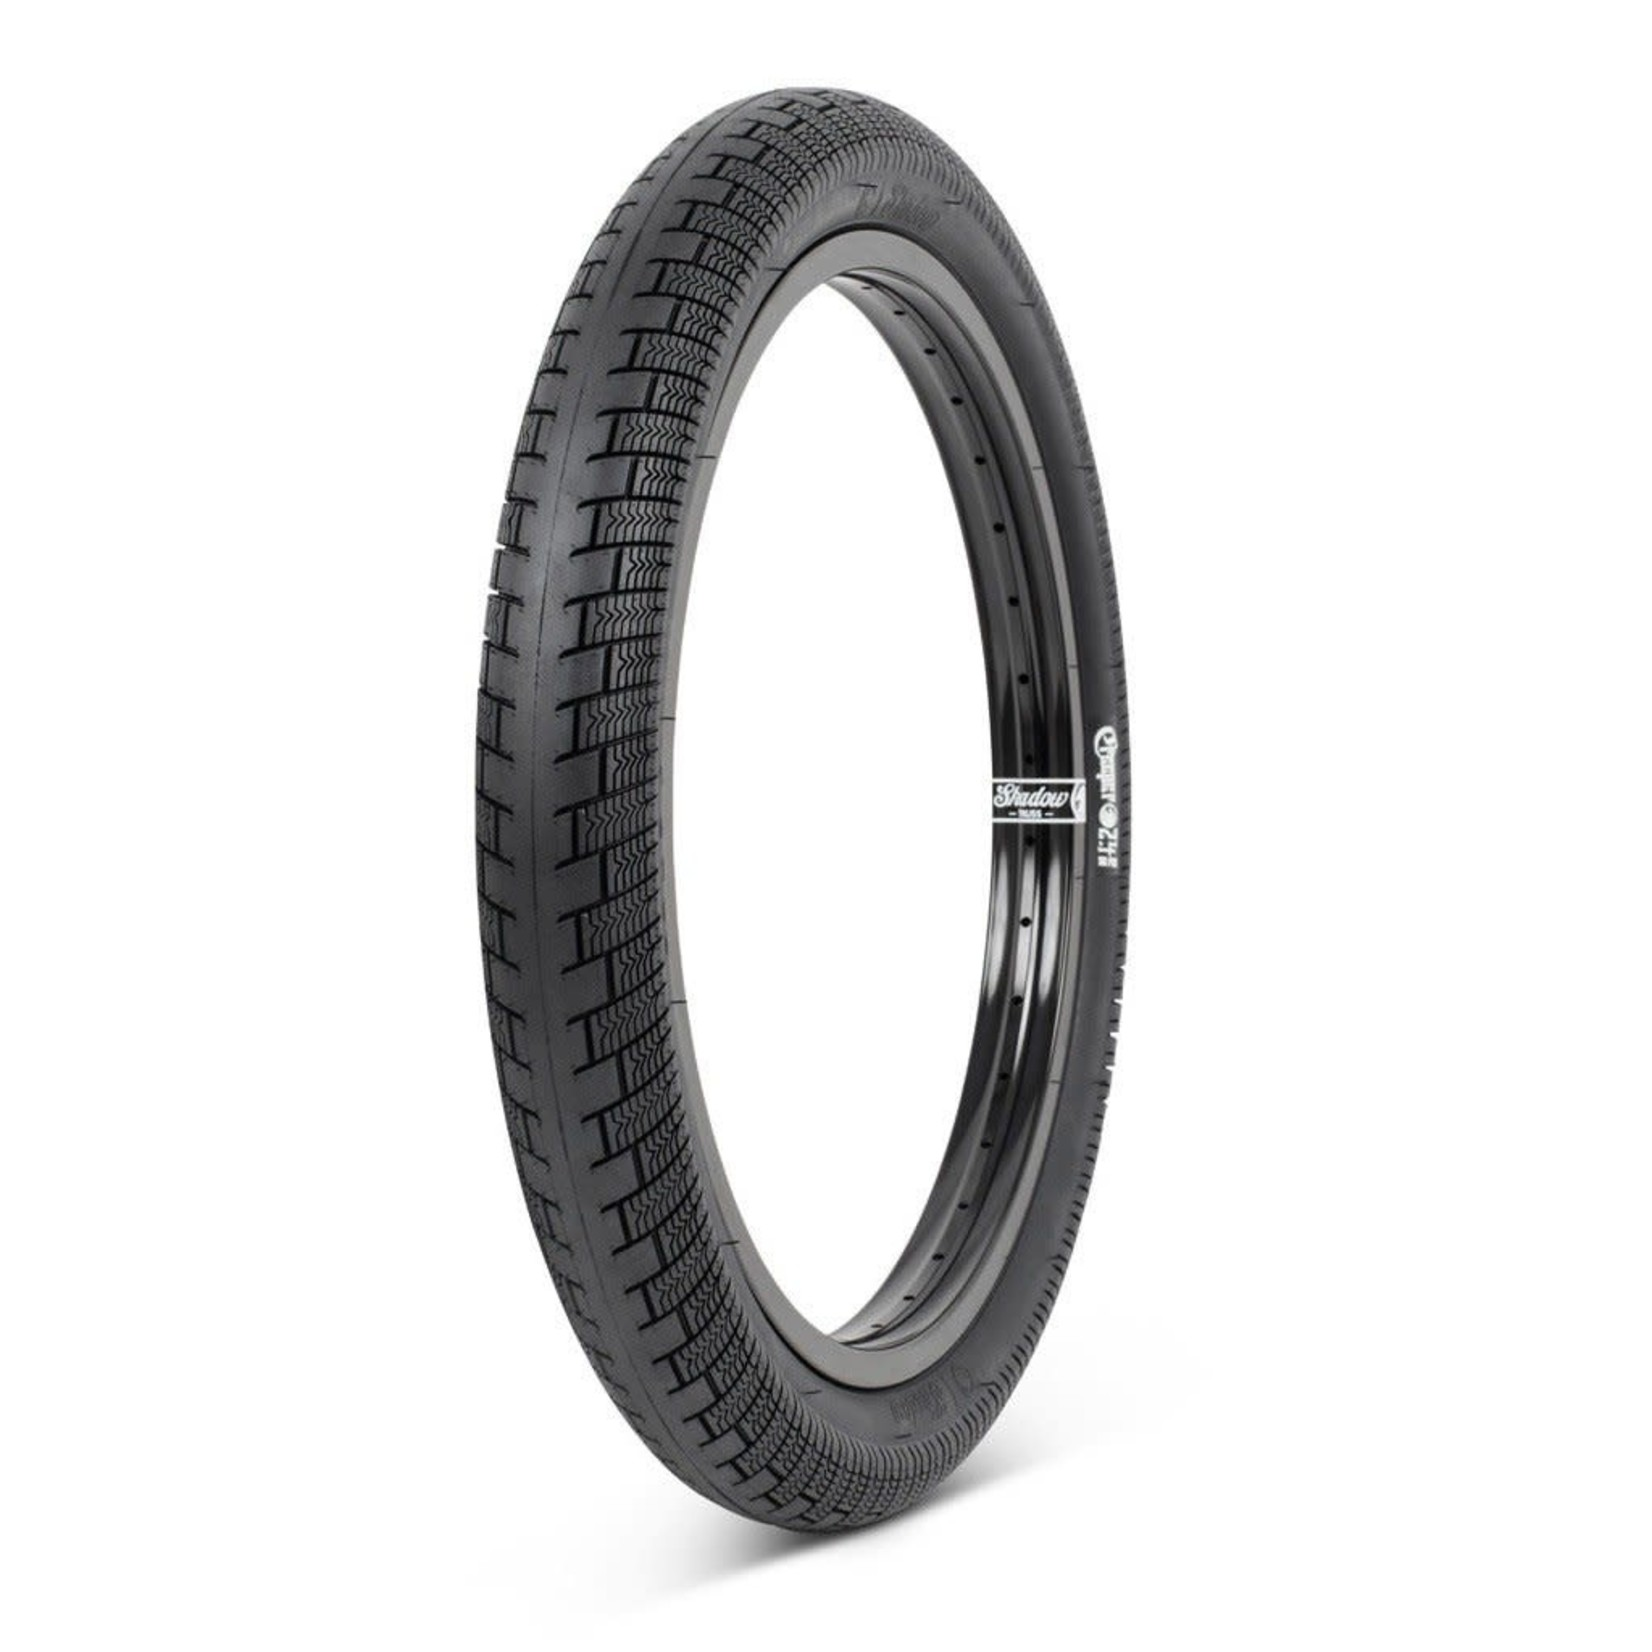 THE SHADOW CONSPIRACY Creeper Tire 20x2.4